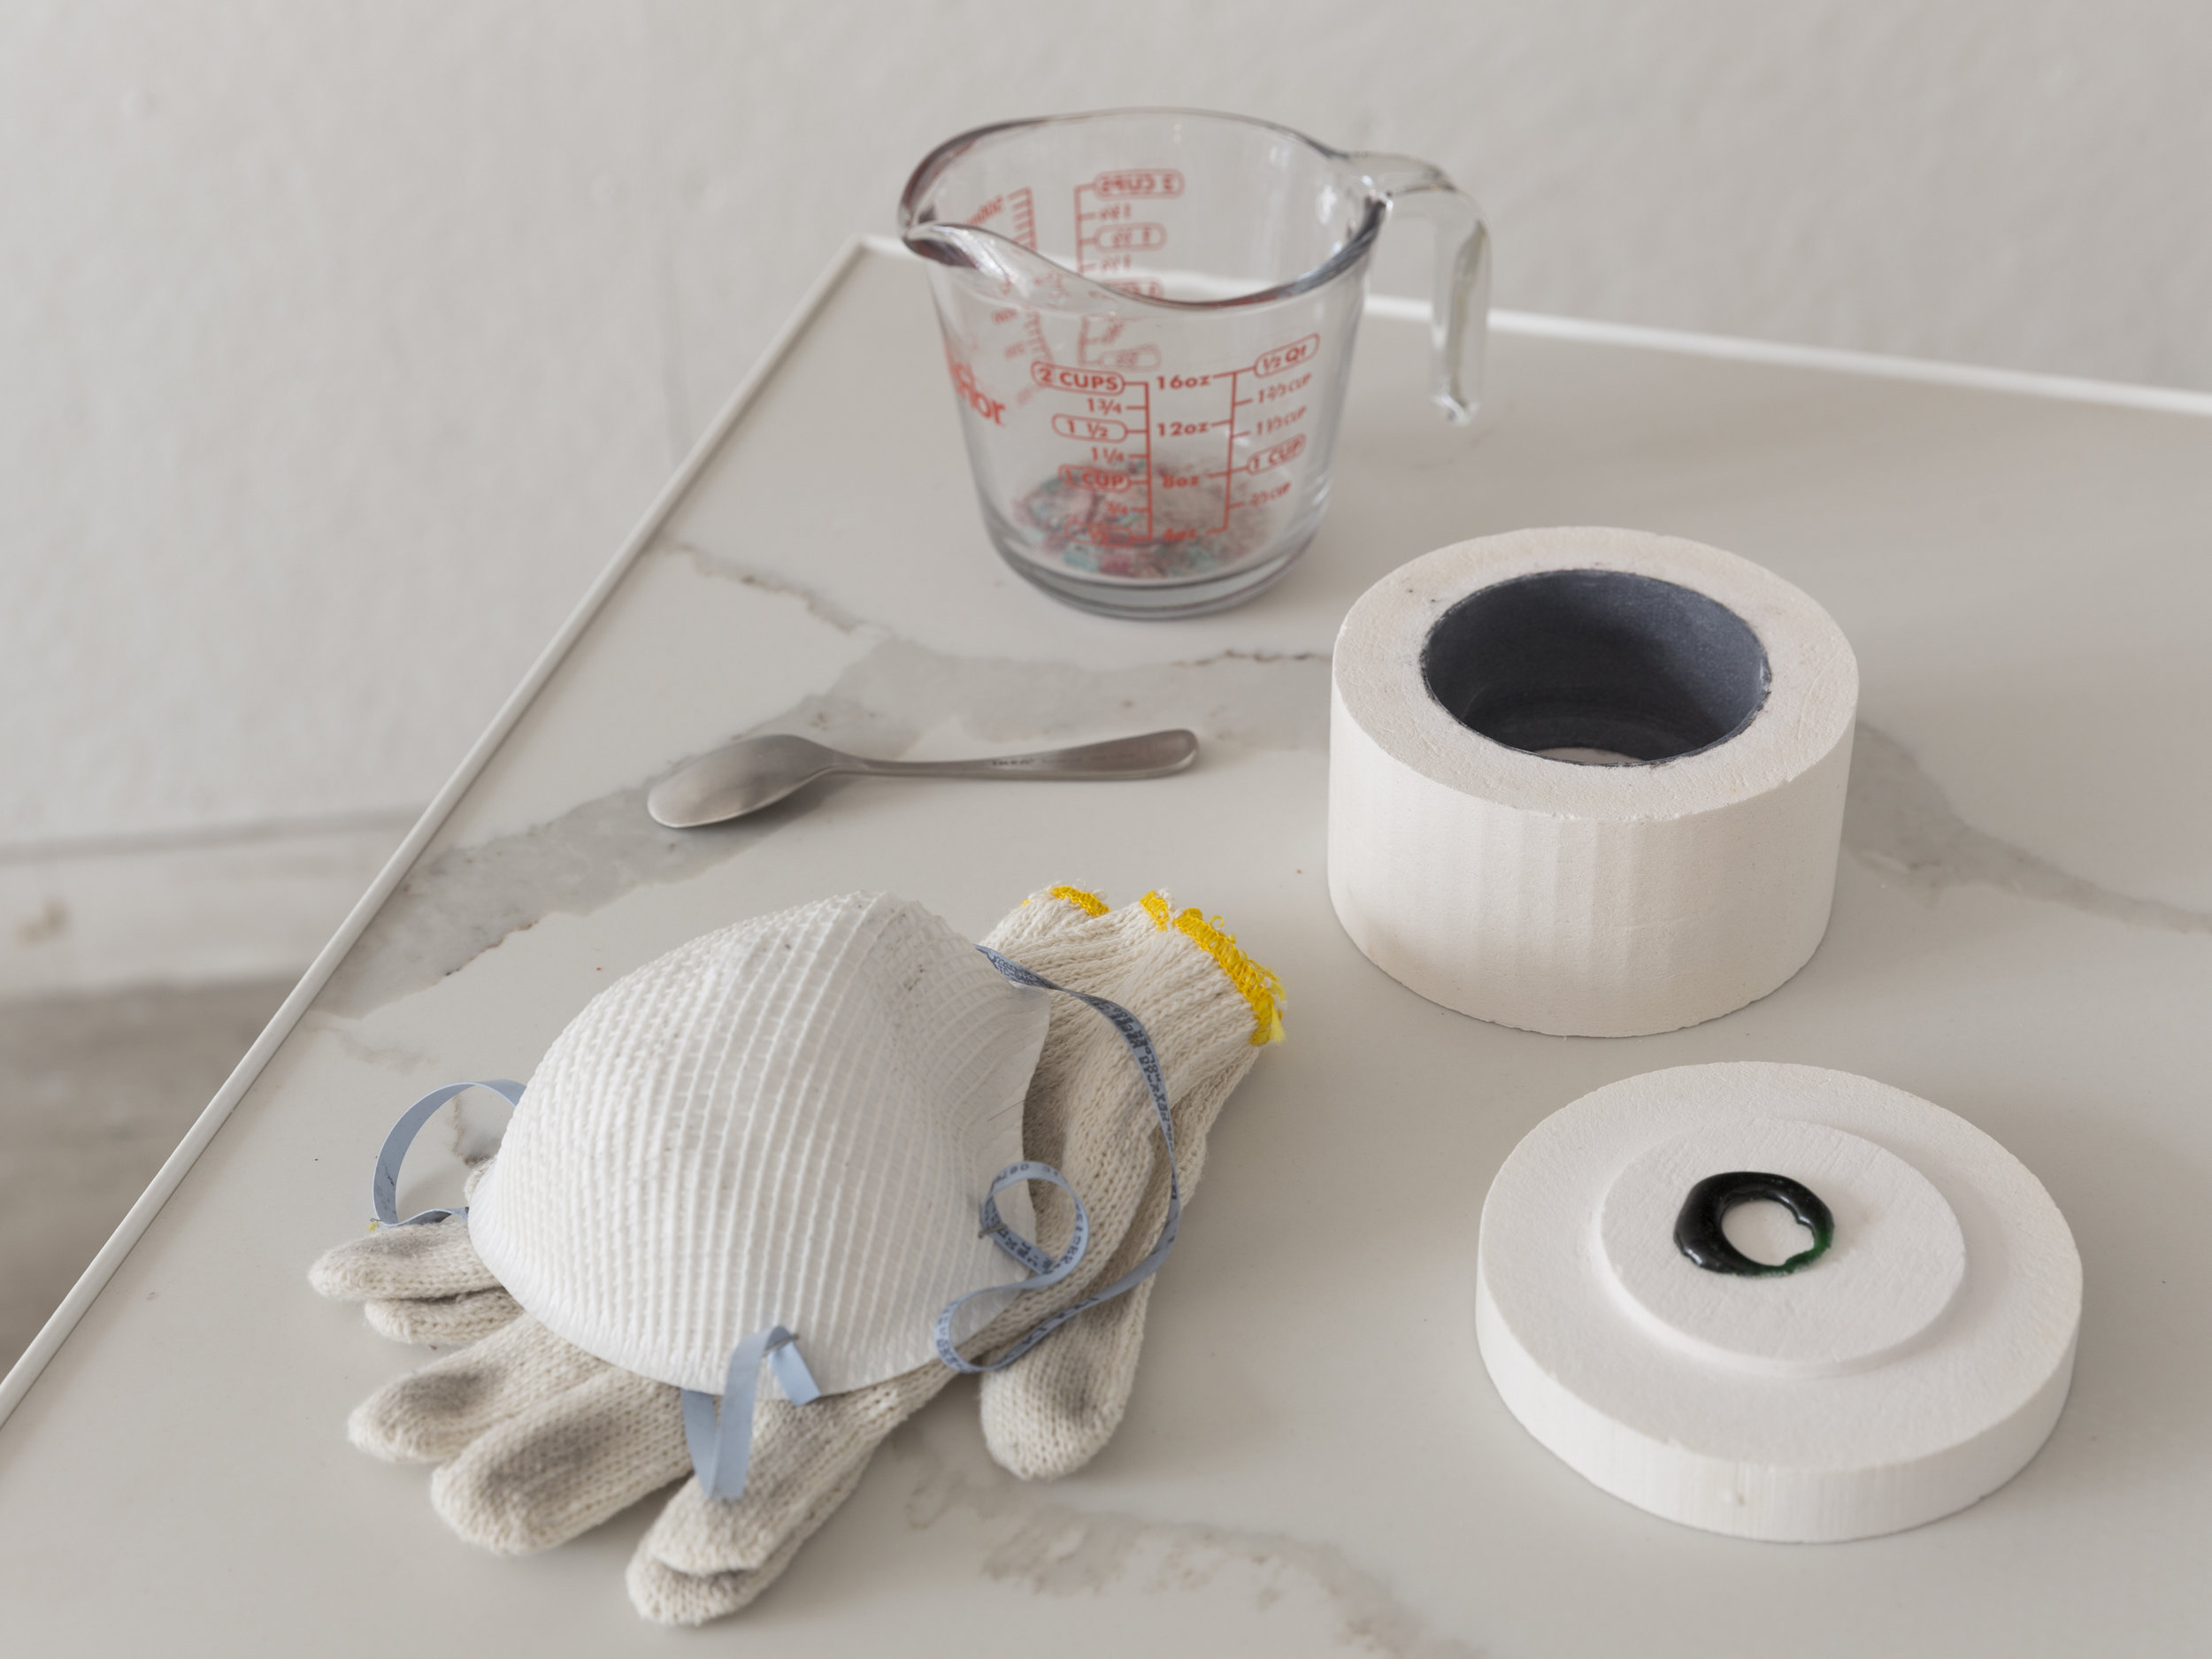 Station 3 detail: objects needed to create microwaveable chakra   Microwavable kiln, gloves, dust mask, measuring cup, glass shards, microwaved chakra, spoon ,  quartz, iron   Photo credit:  Jonathan Allen